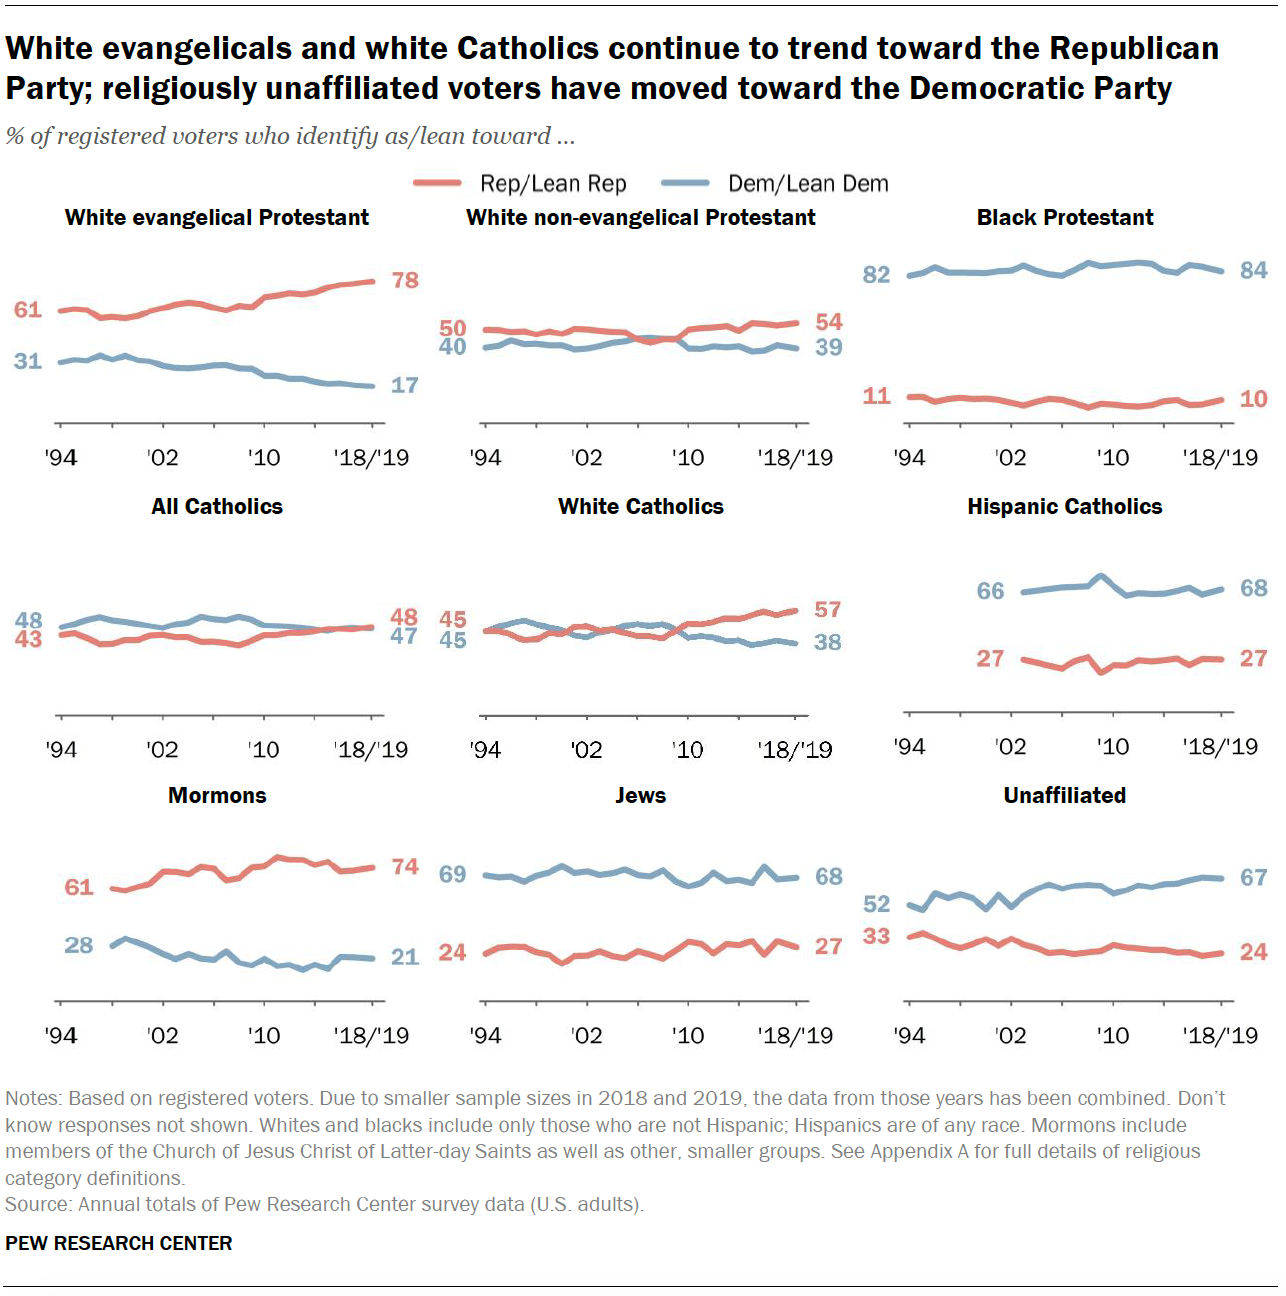 White evangelicals and white Catholics continue to trend toward the Republican Party; religiously unaffiliated voters have moved toward the Democratic Party